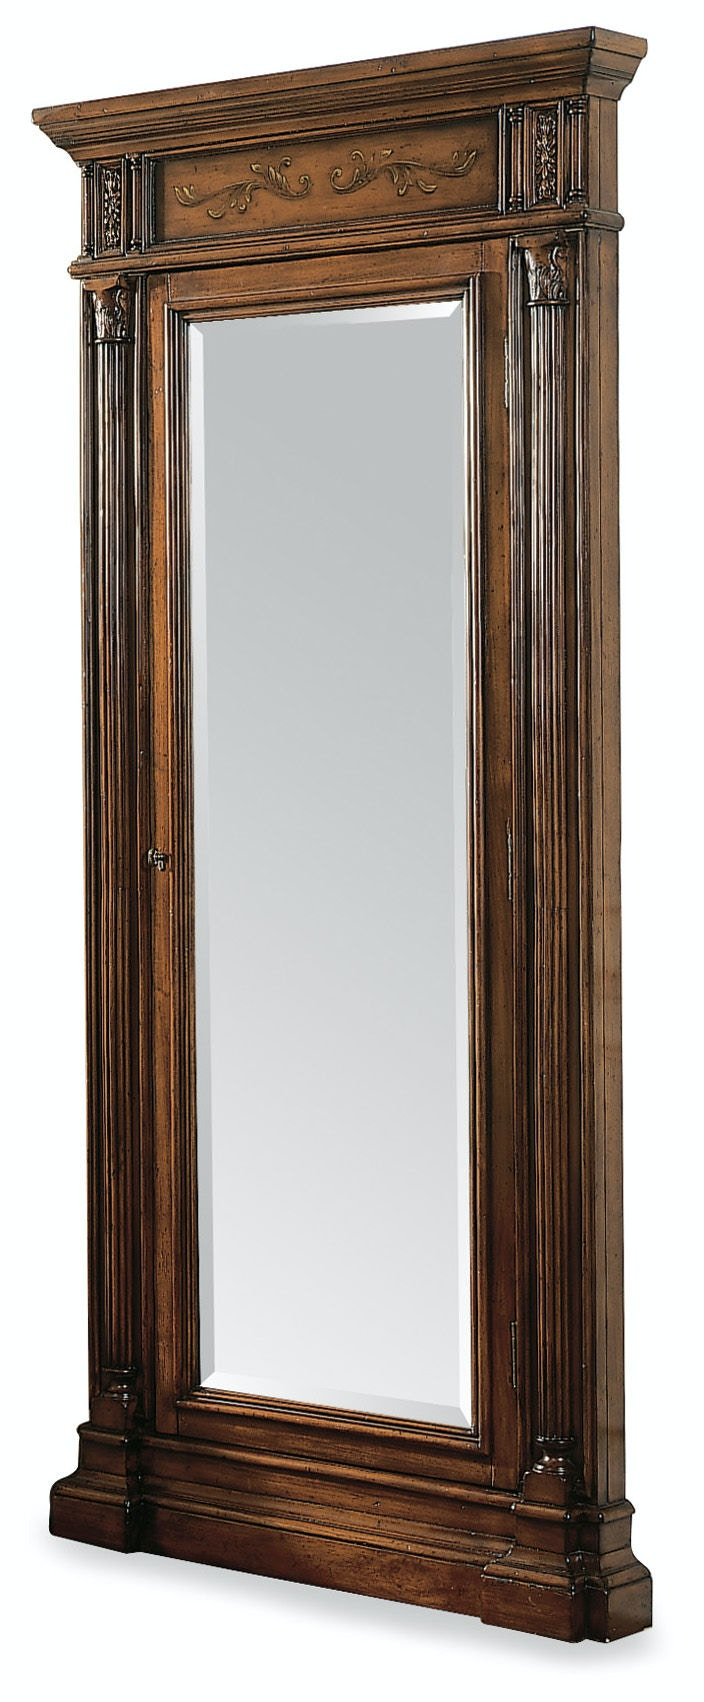 Hooker Furniture Floor Mirror W/Jewelry Armoire Storage 500 50 558